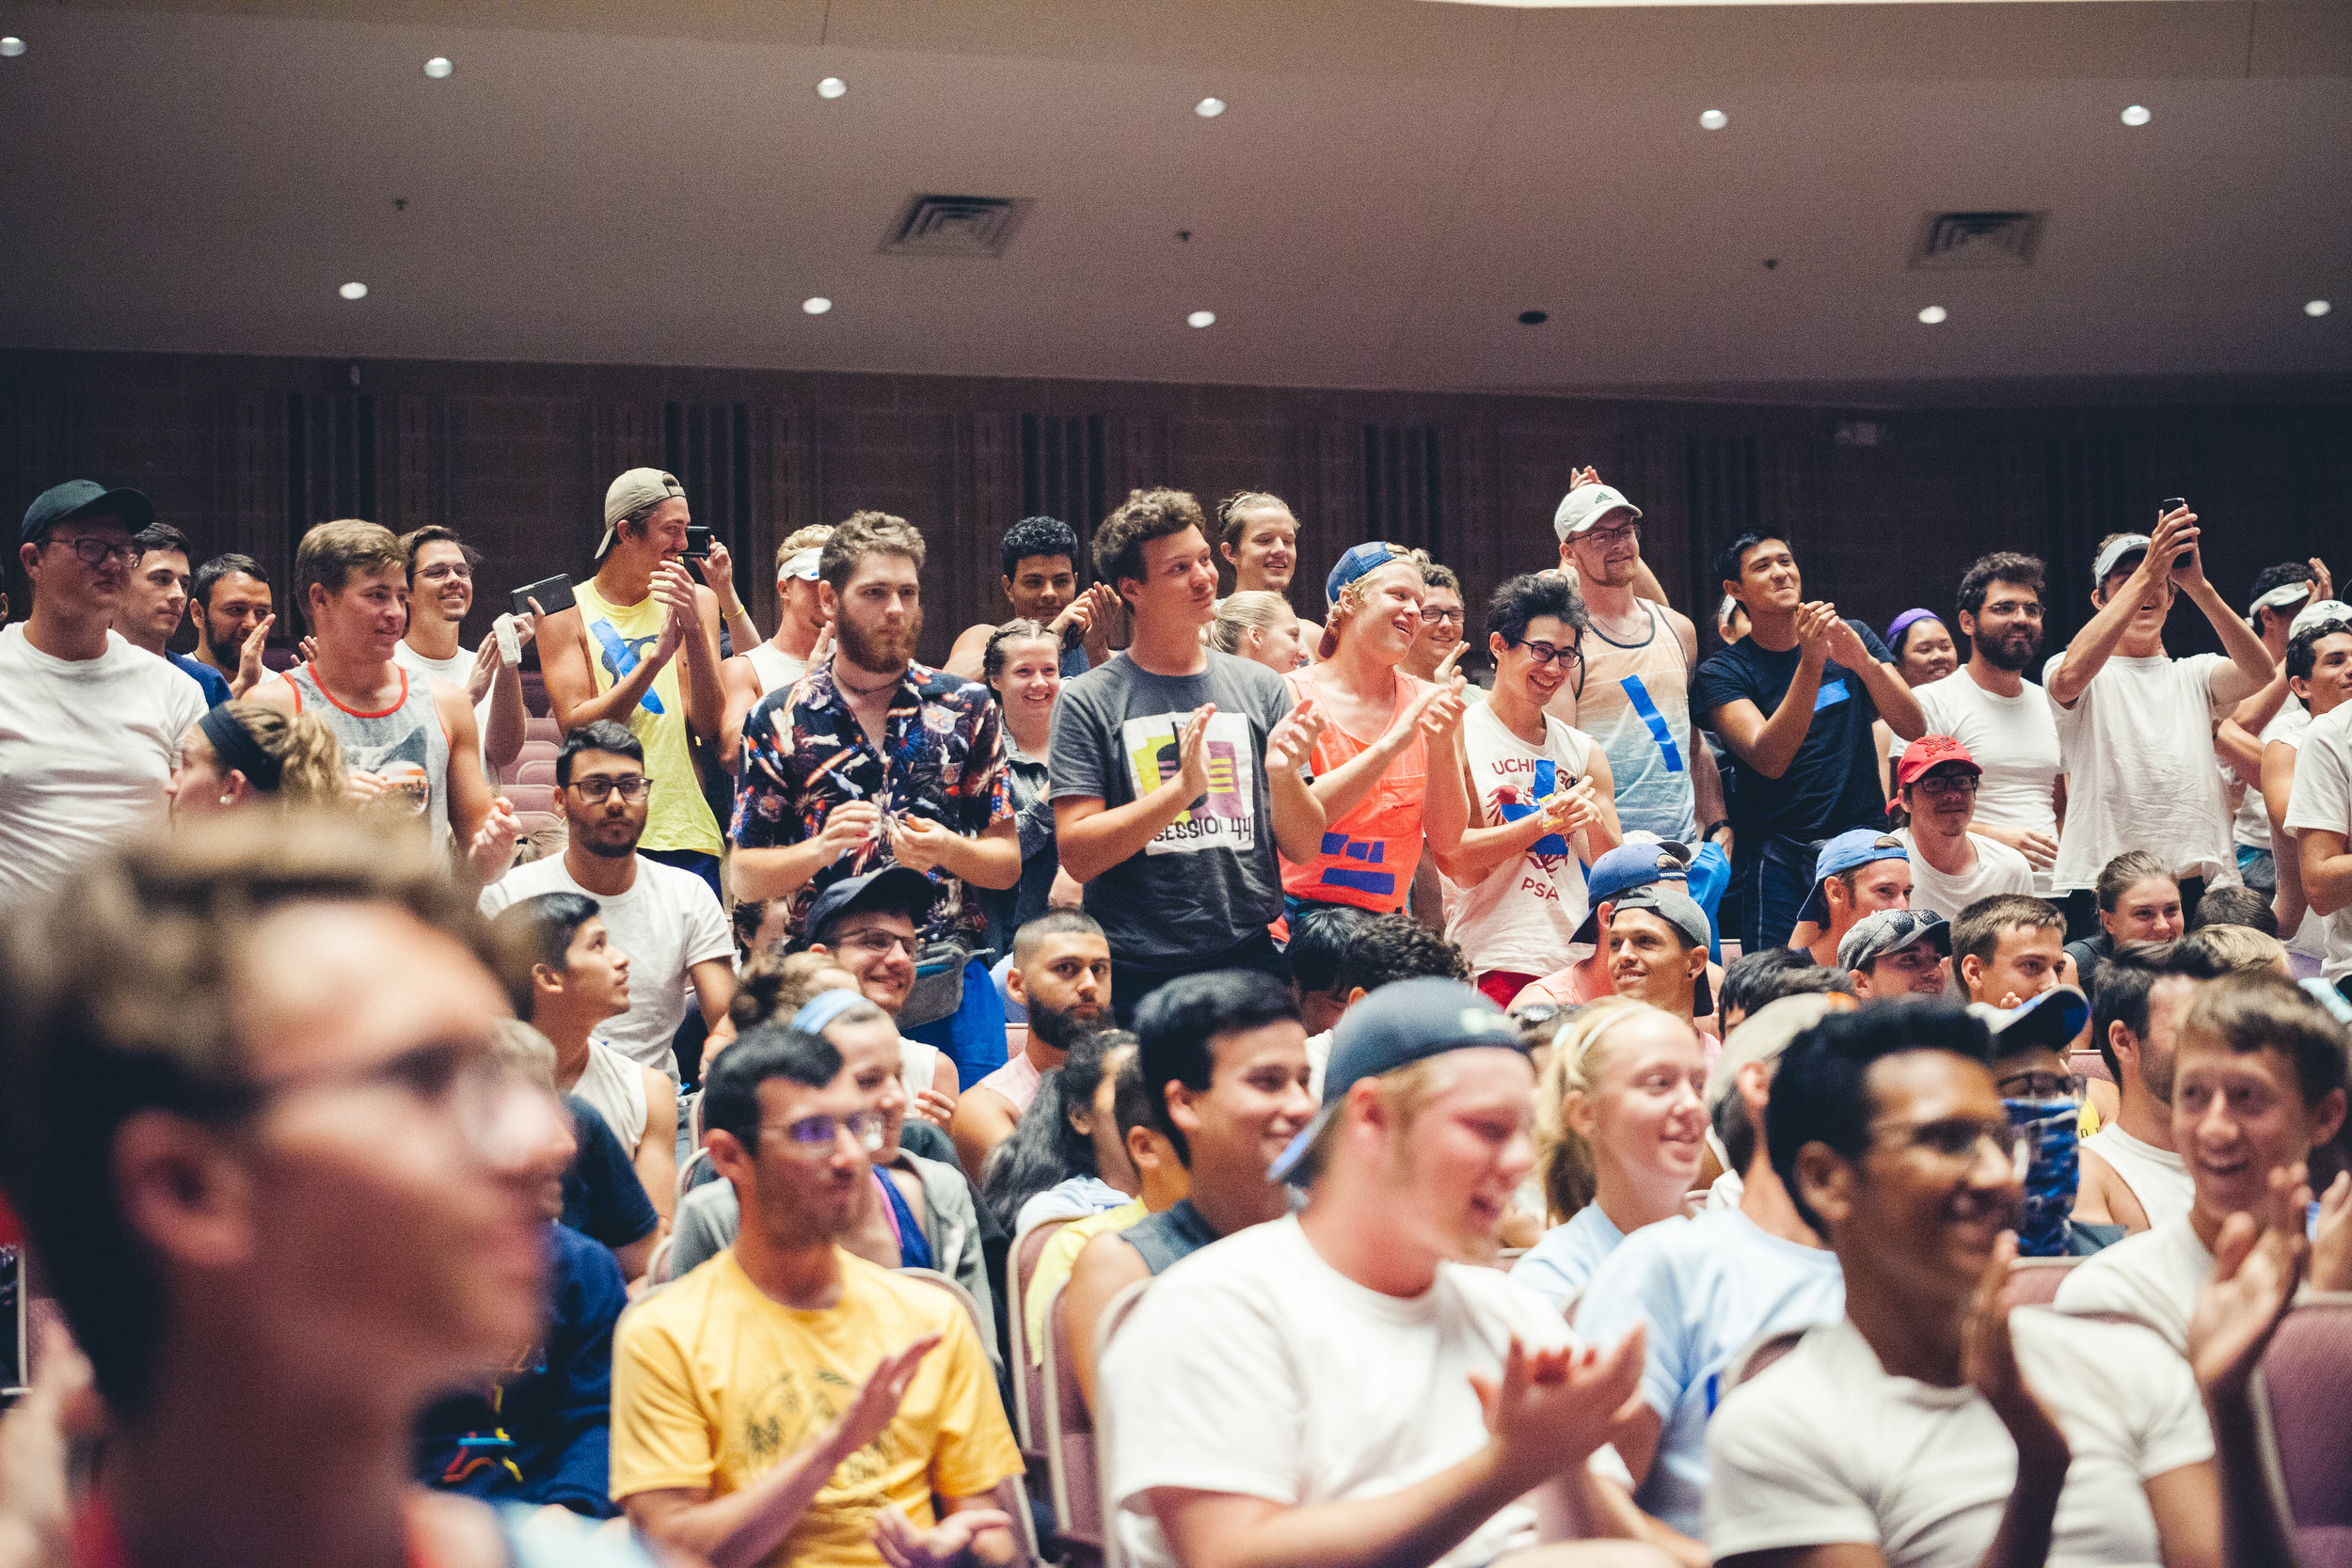 Members of the 2019 Bluecoats and students of THE BLUE WAY Interactive Educational Experience jump to their feet following the exciting finale of Jeff Nelsen's  Fearless Performance  lecture.